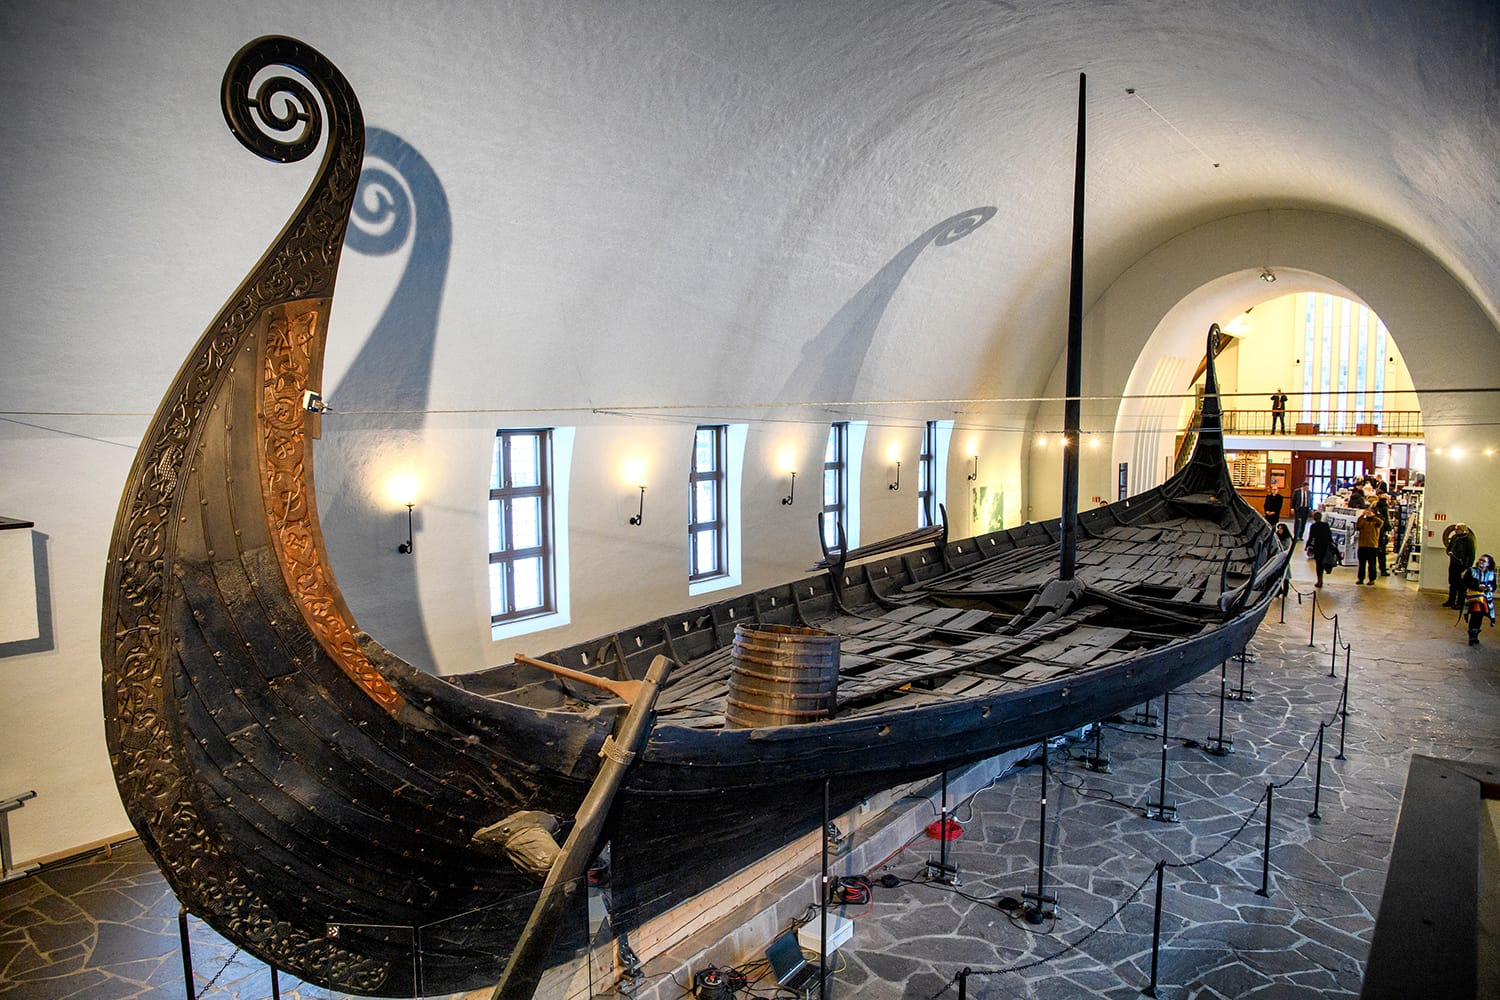 Viking ship (drakkar) in vikings museum in Oslo, Norway